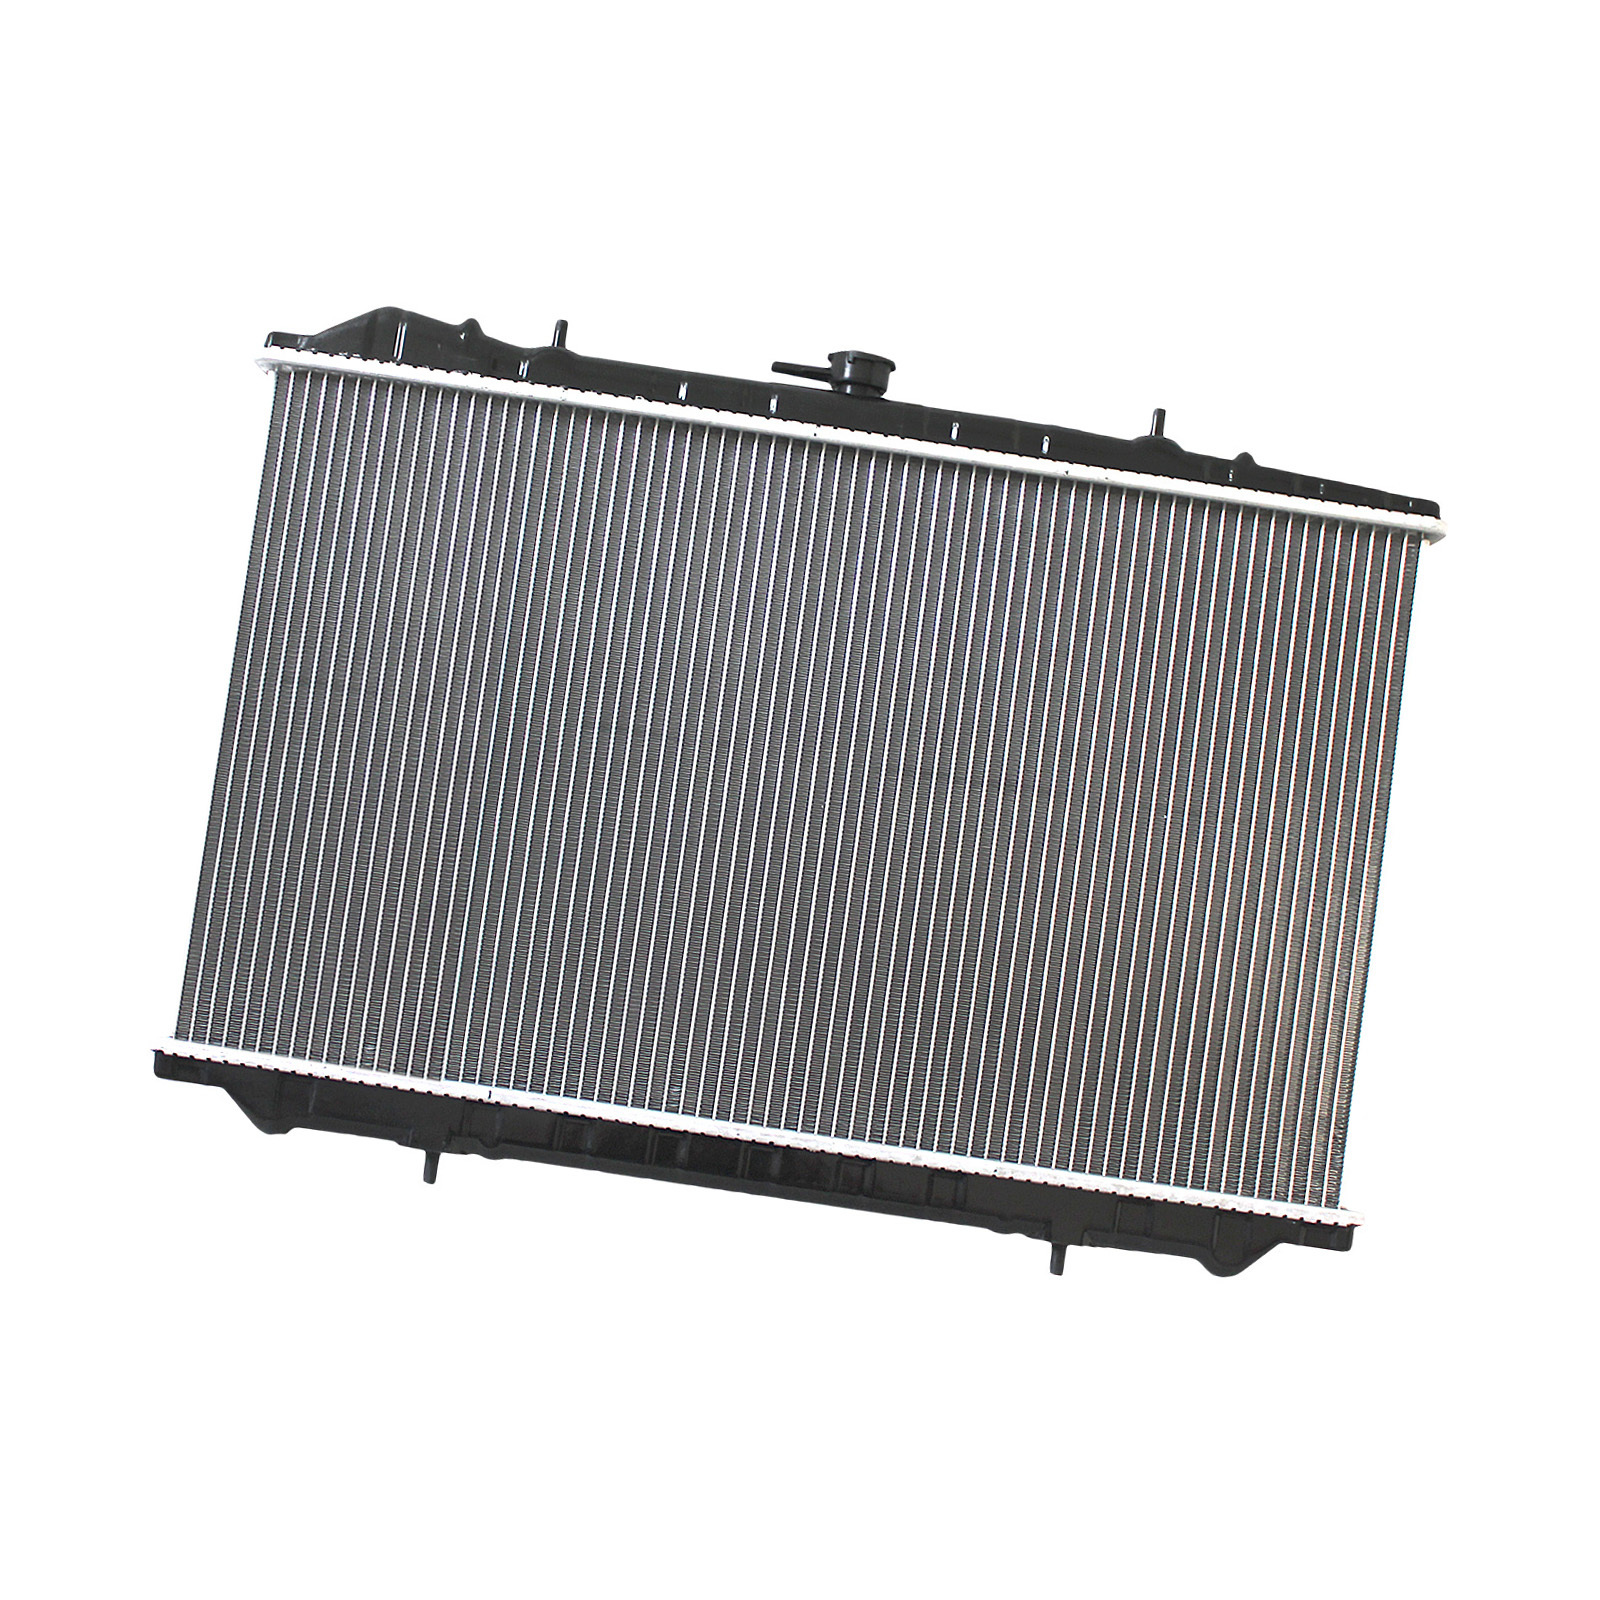 New Radiator For 90-96 Nissan 300ZX 3.0L V6 OEM 21460-30P10